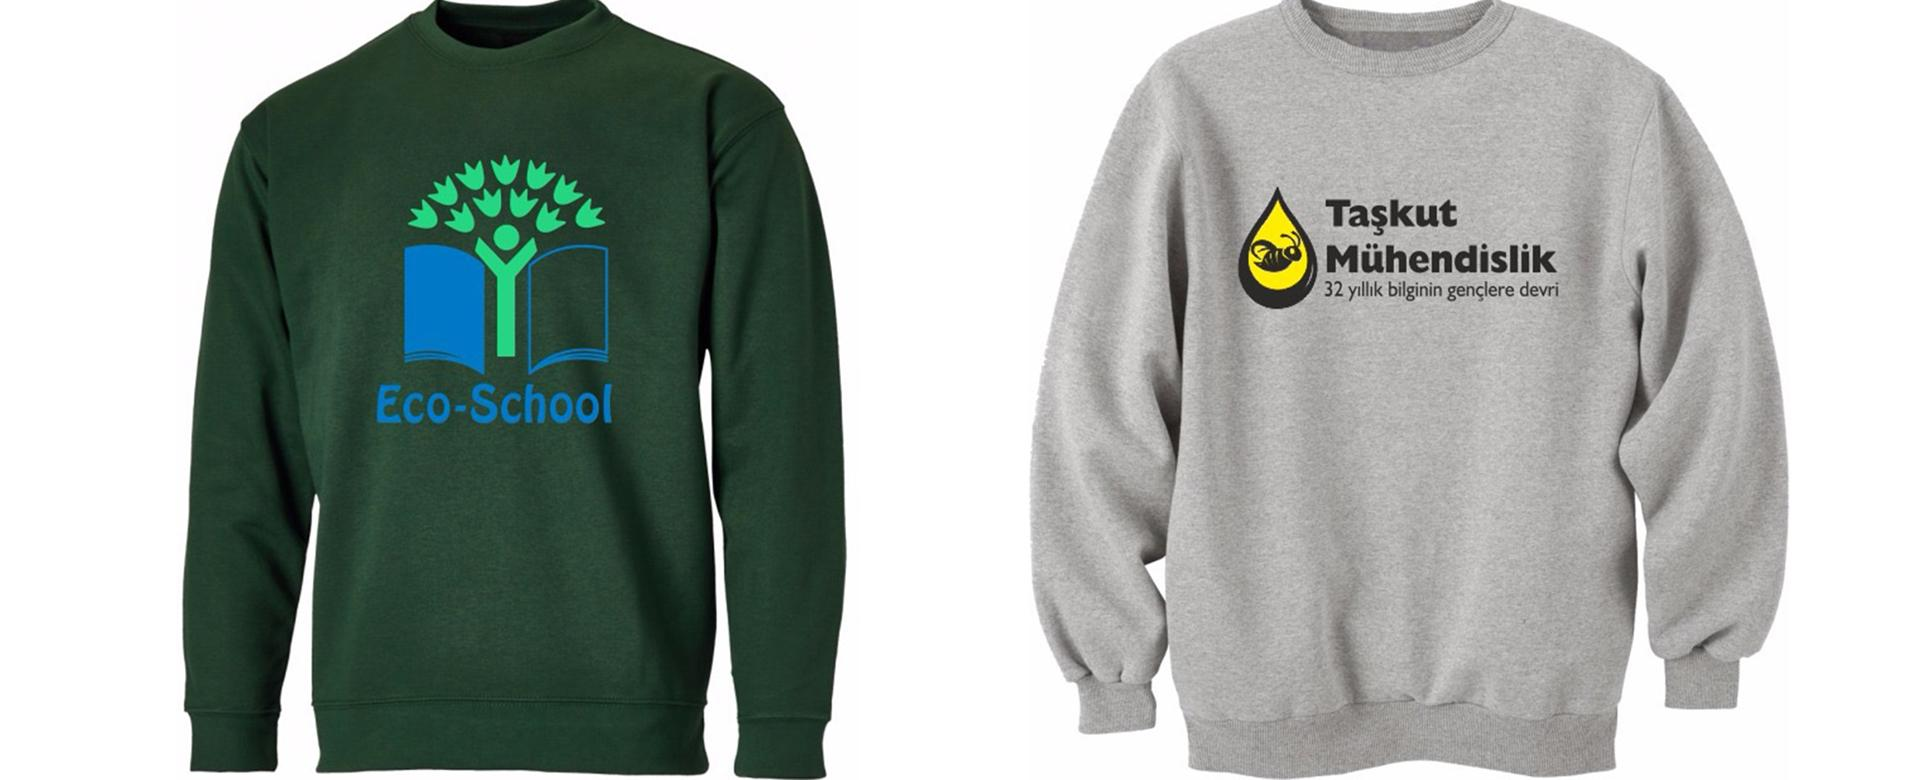 We print sweatshirts for you and send it worldwide